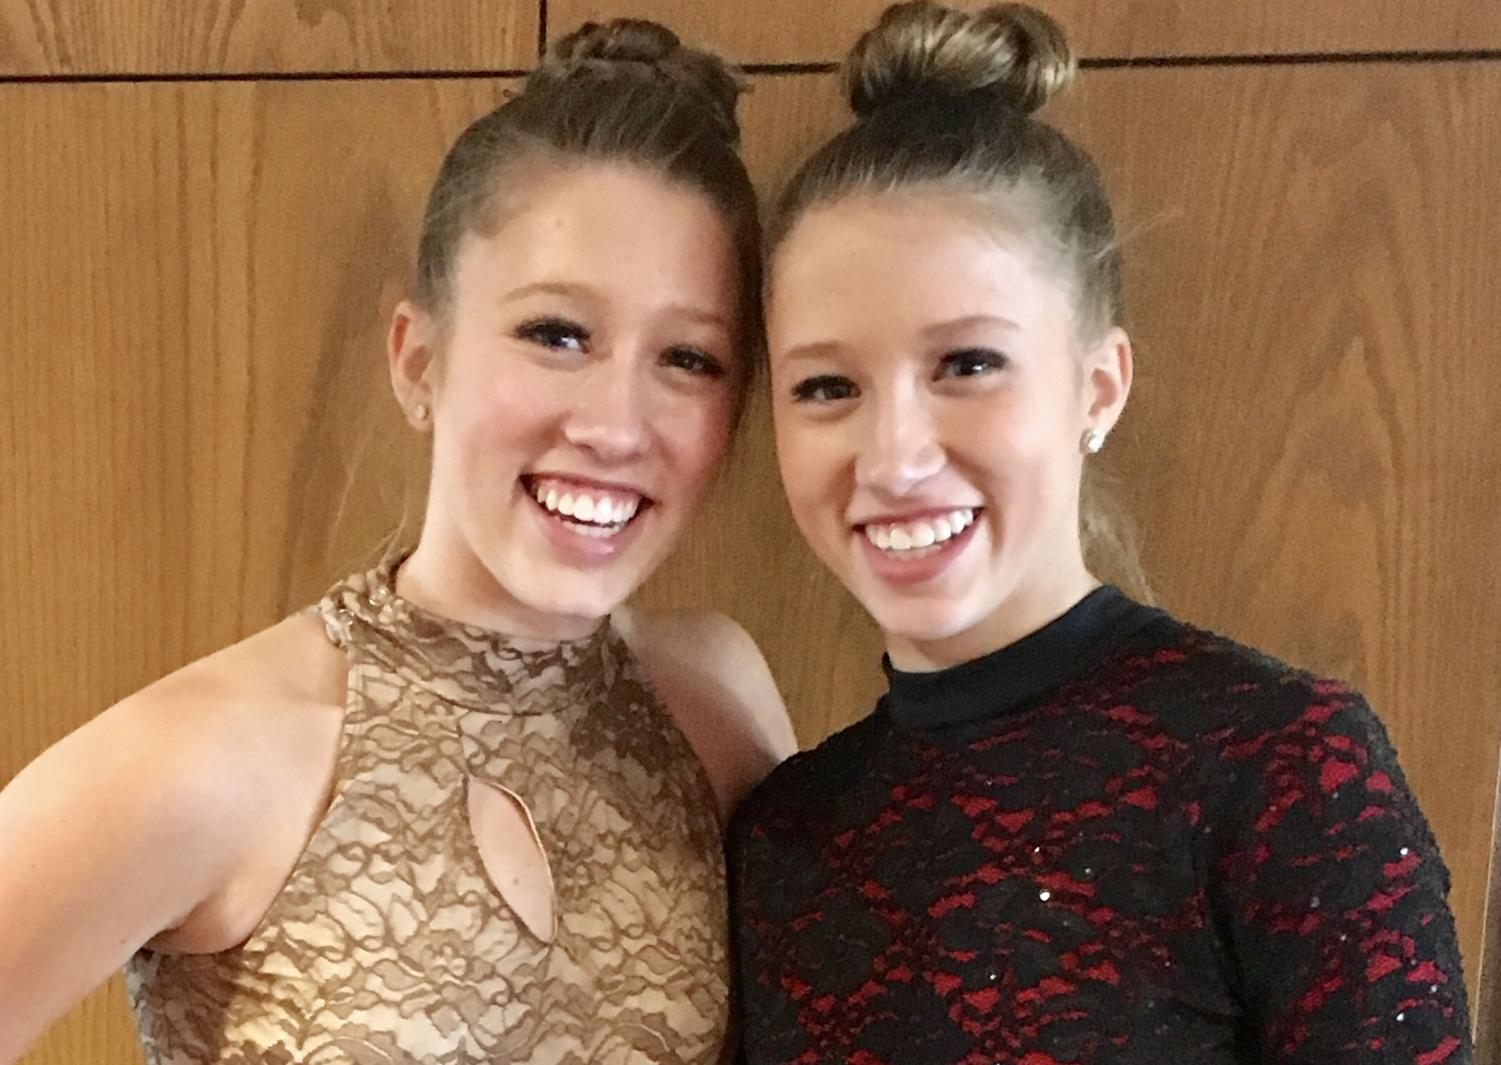 Sophomore twins Ava and Elise Karlstad pose for a picture after a dance recital in March. The twins dance at Inspiration Performing Arts Center (IPAC) in Mahtomedi.